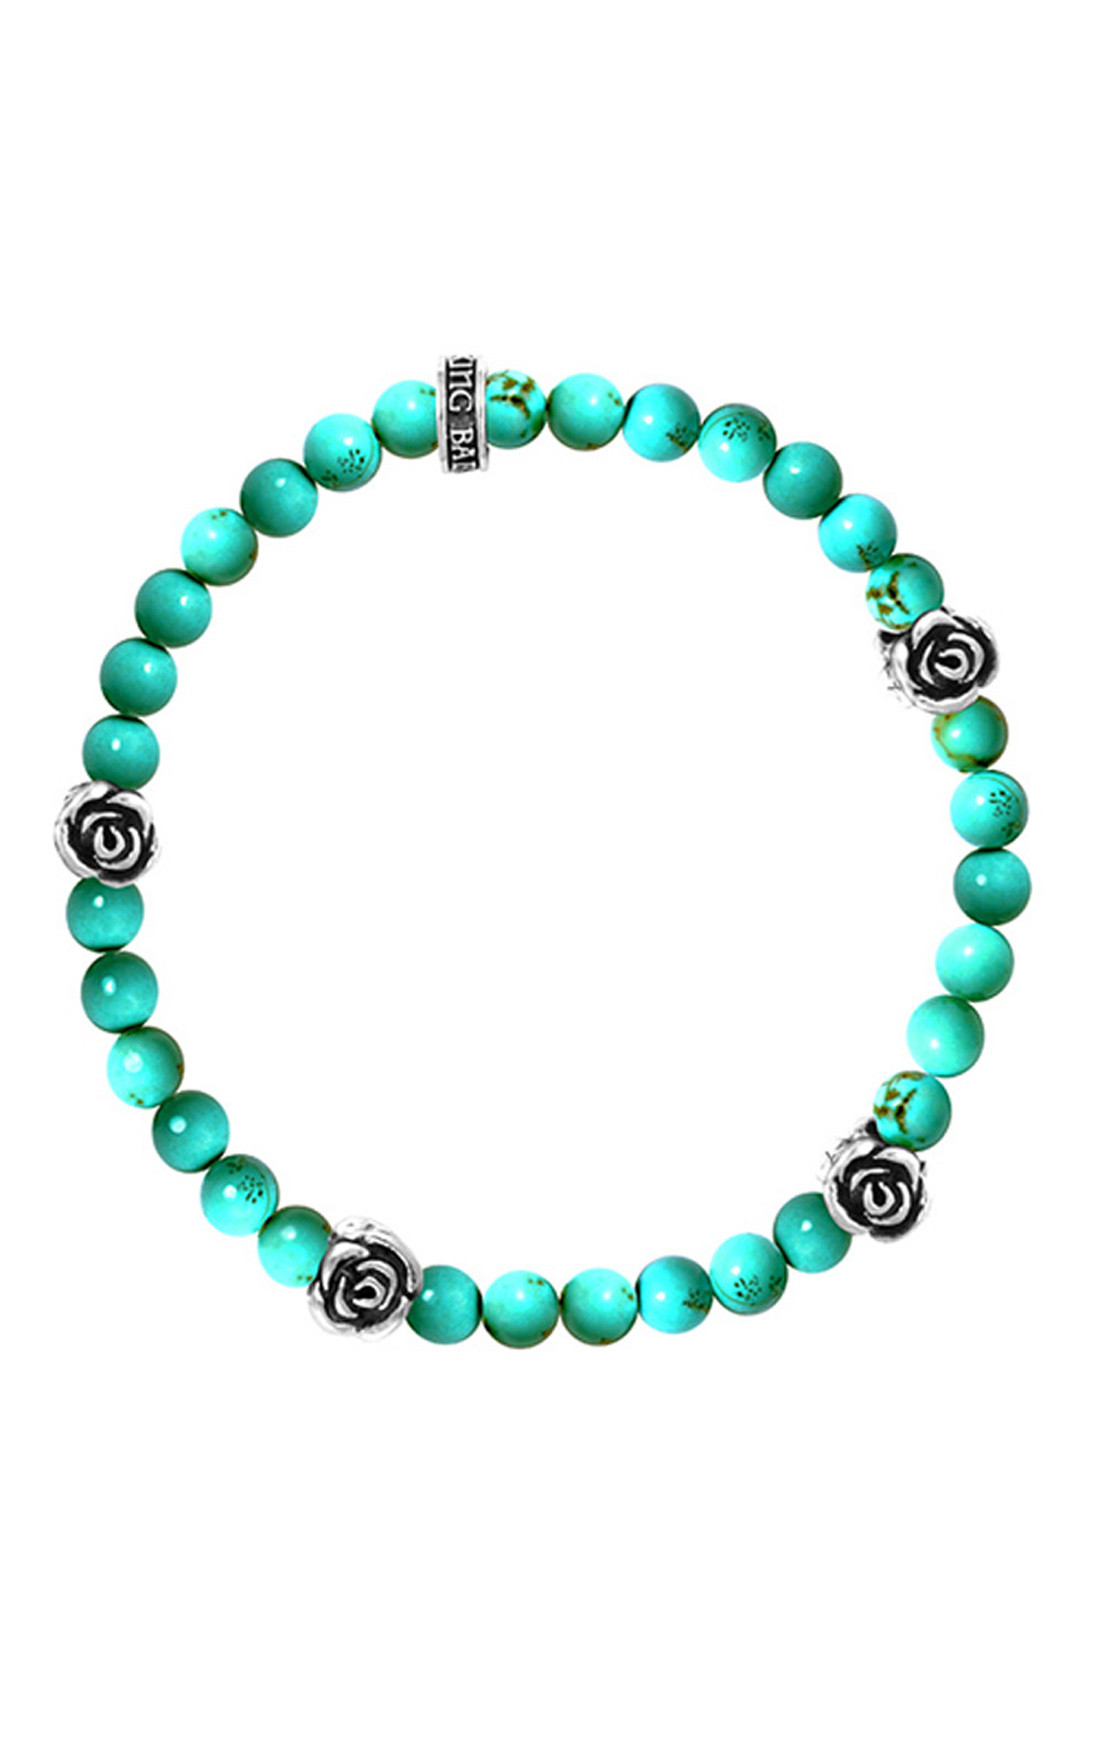 King Baby - 6MM Beaded Bracelet With 4 Silver Roses Turquoise (K40-5529-TUR)